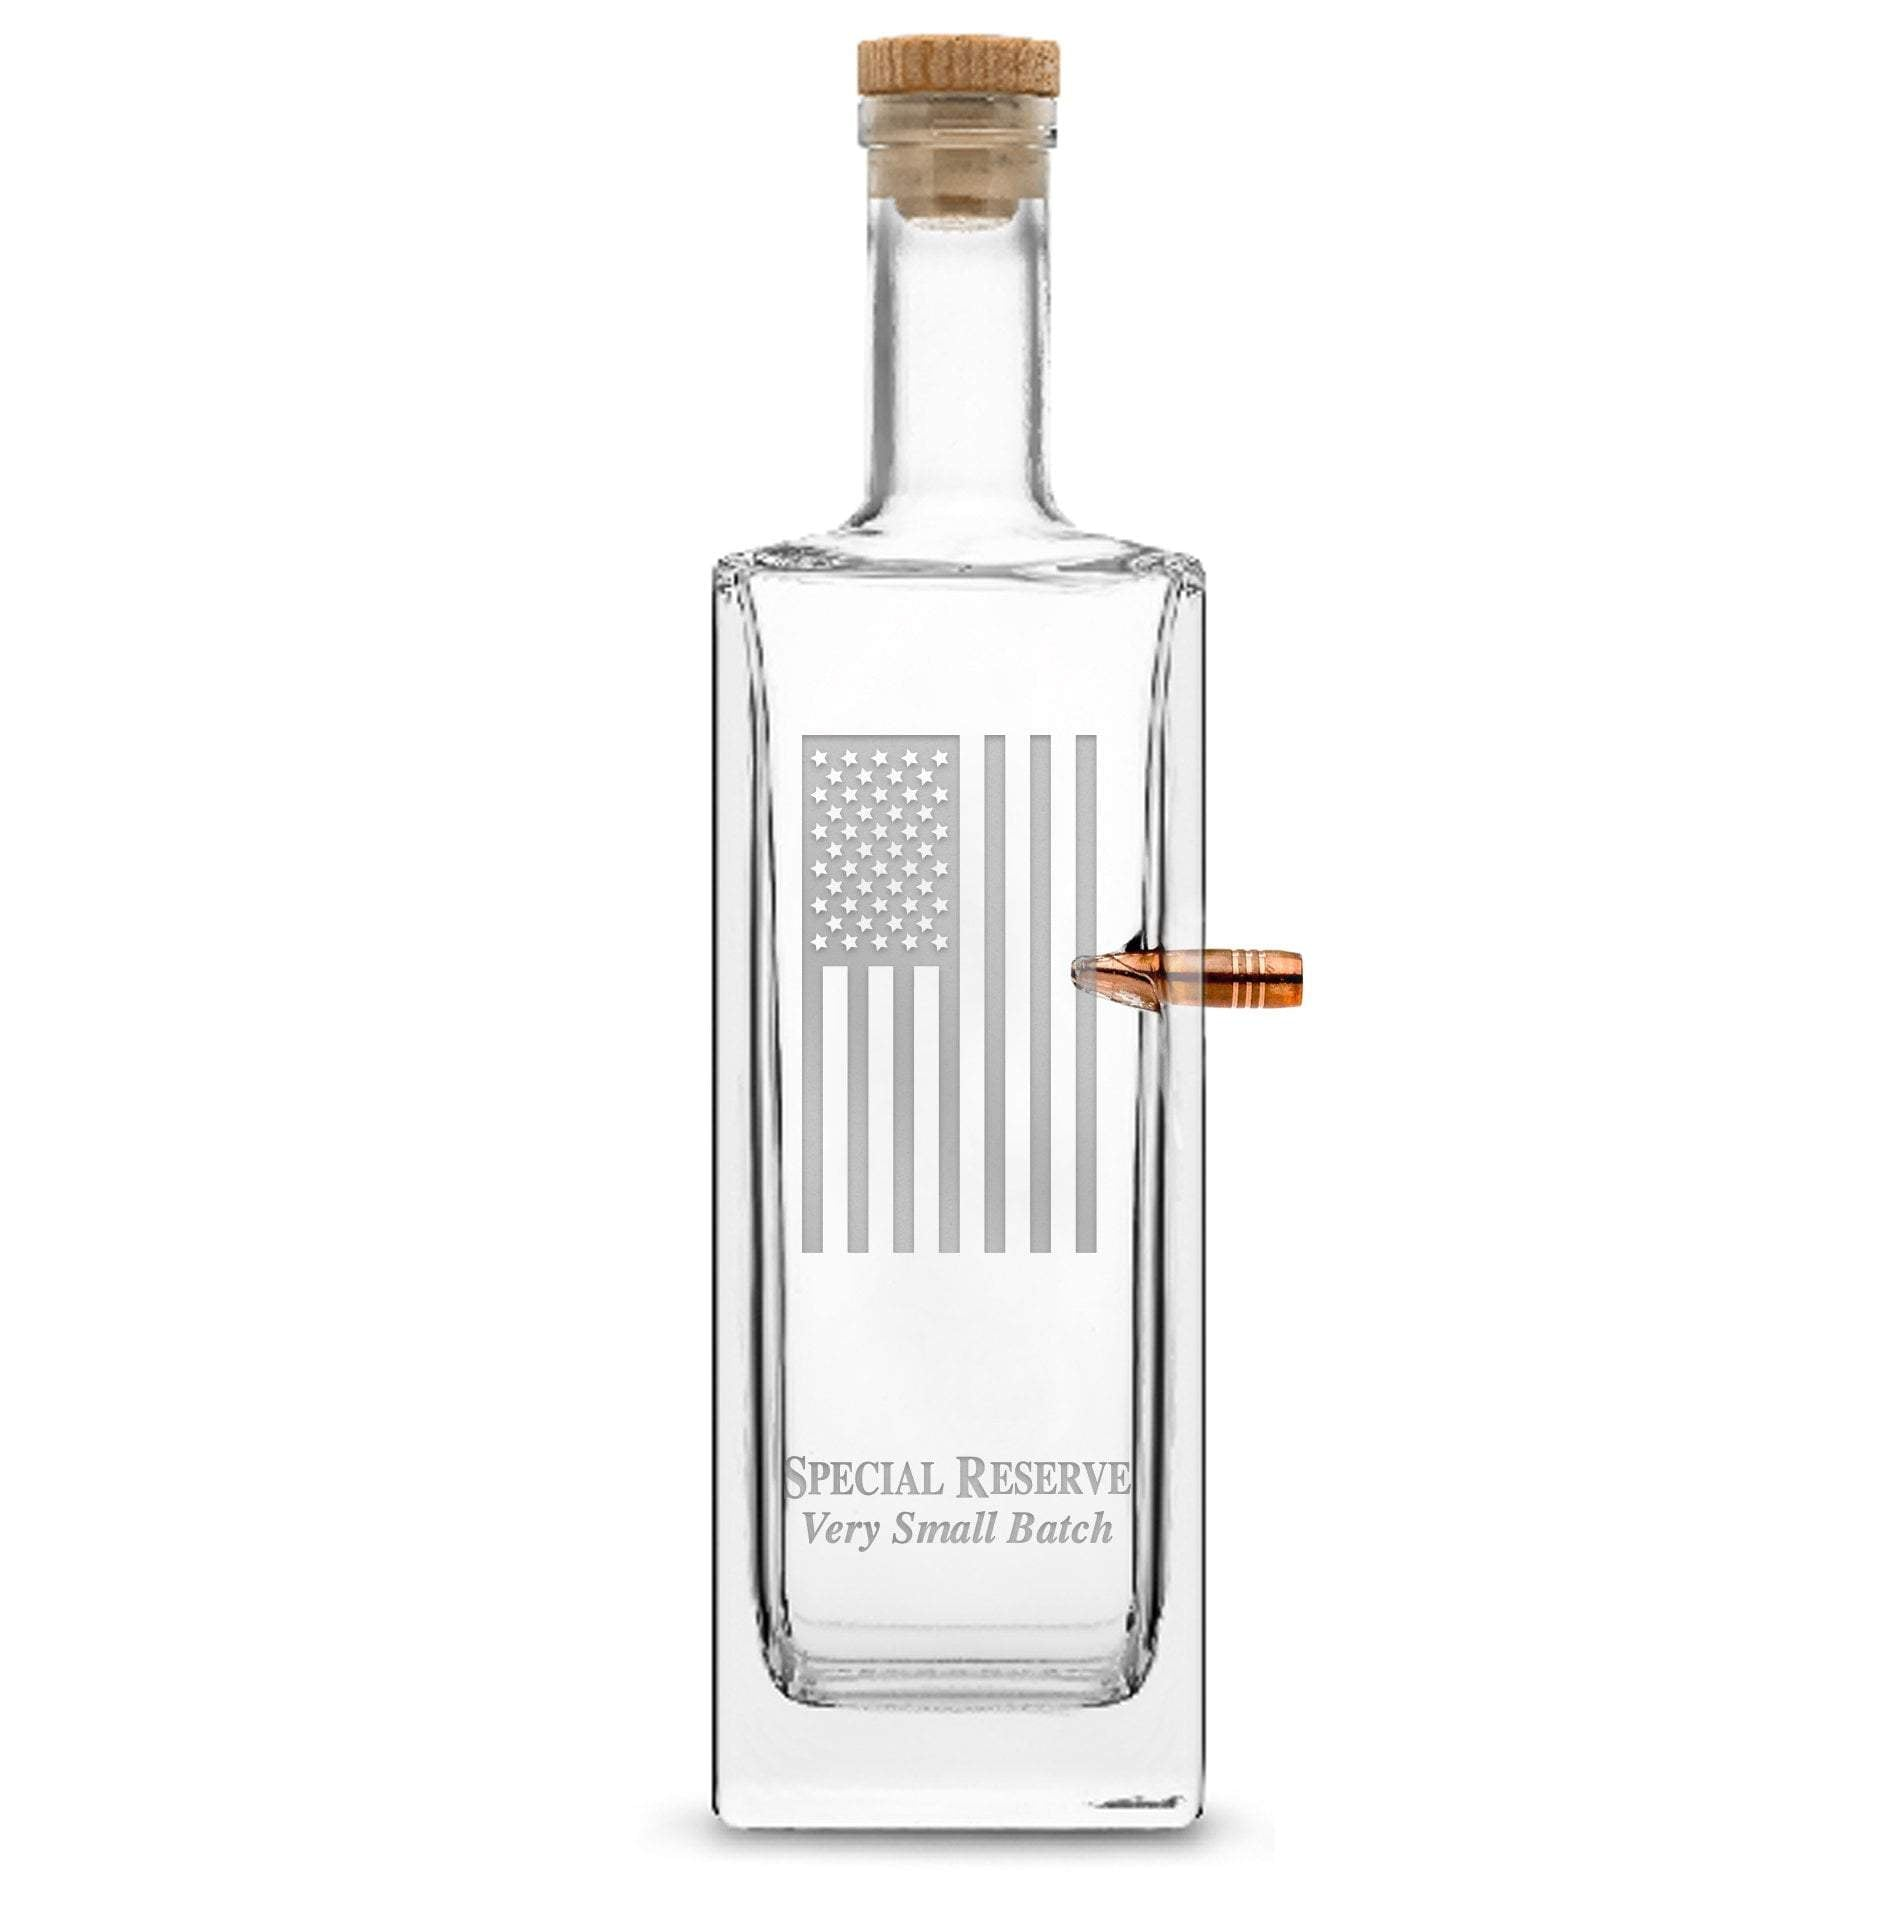 Deep Etched (no color) Premium .50 Cal BMG Bullet Bottle, Liberty Whiskey Decanter with Cork Stopper, American Flag, 750mL by Integrity Bottles